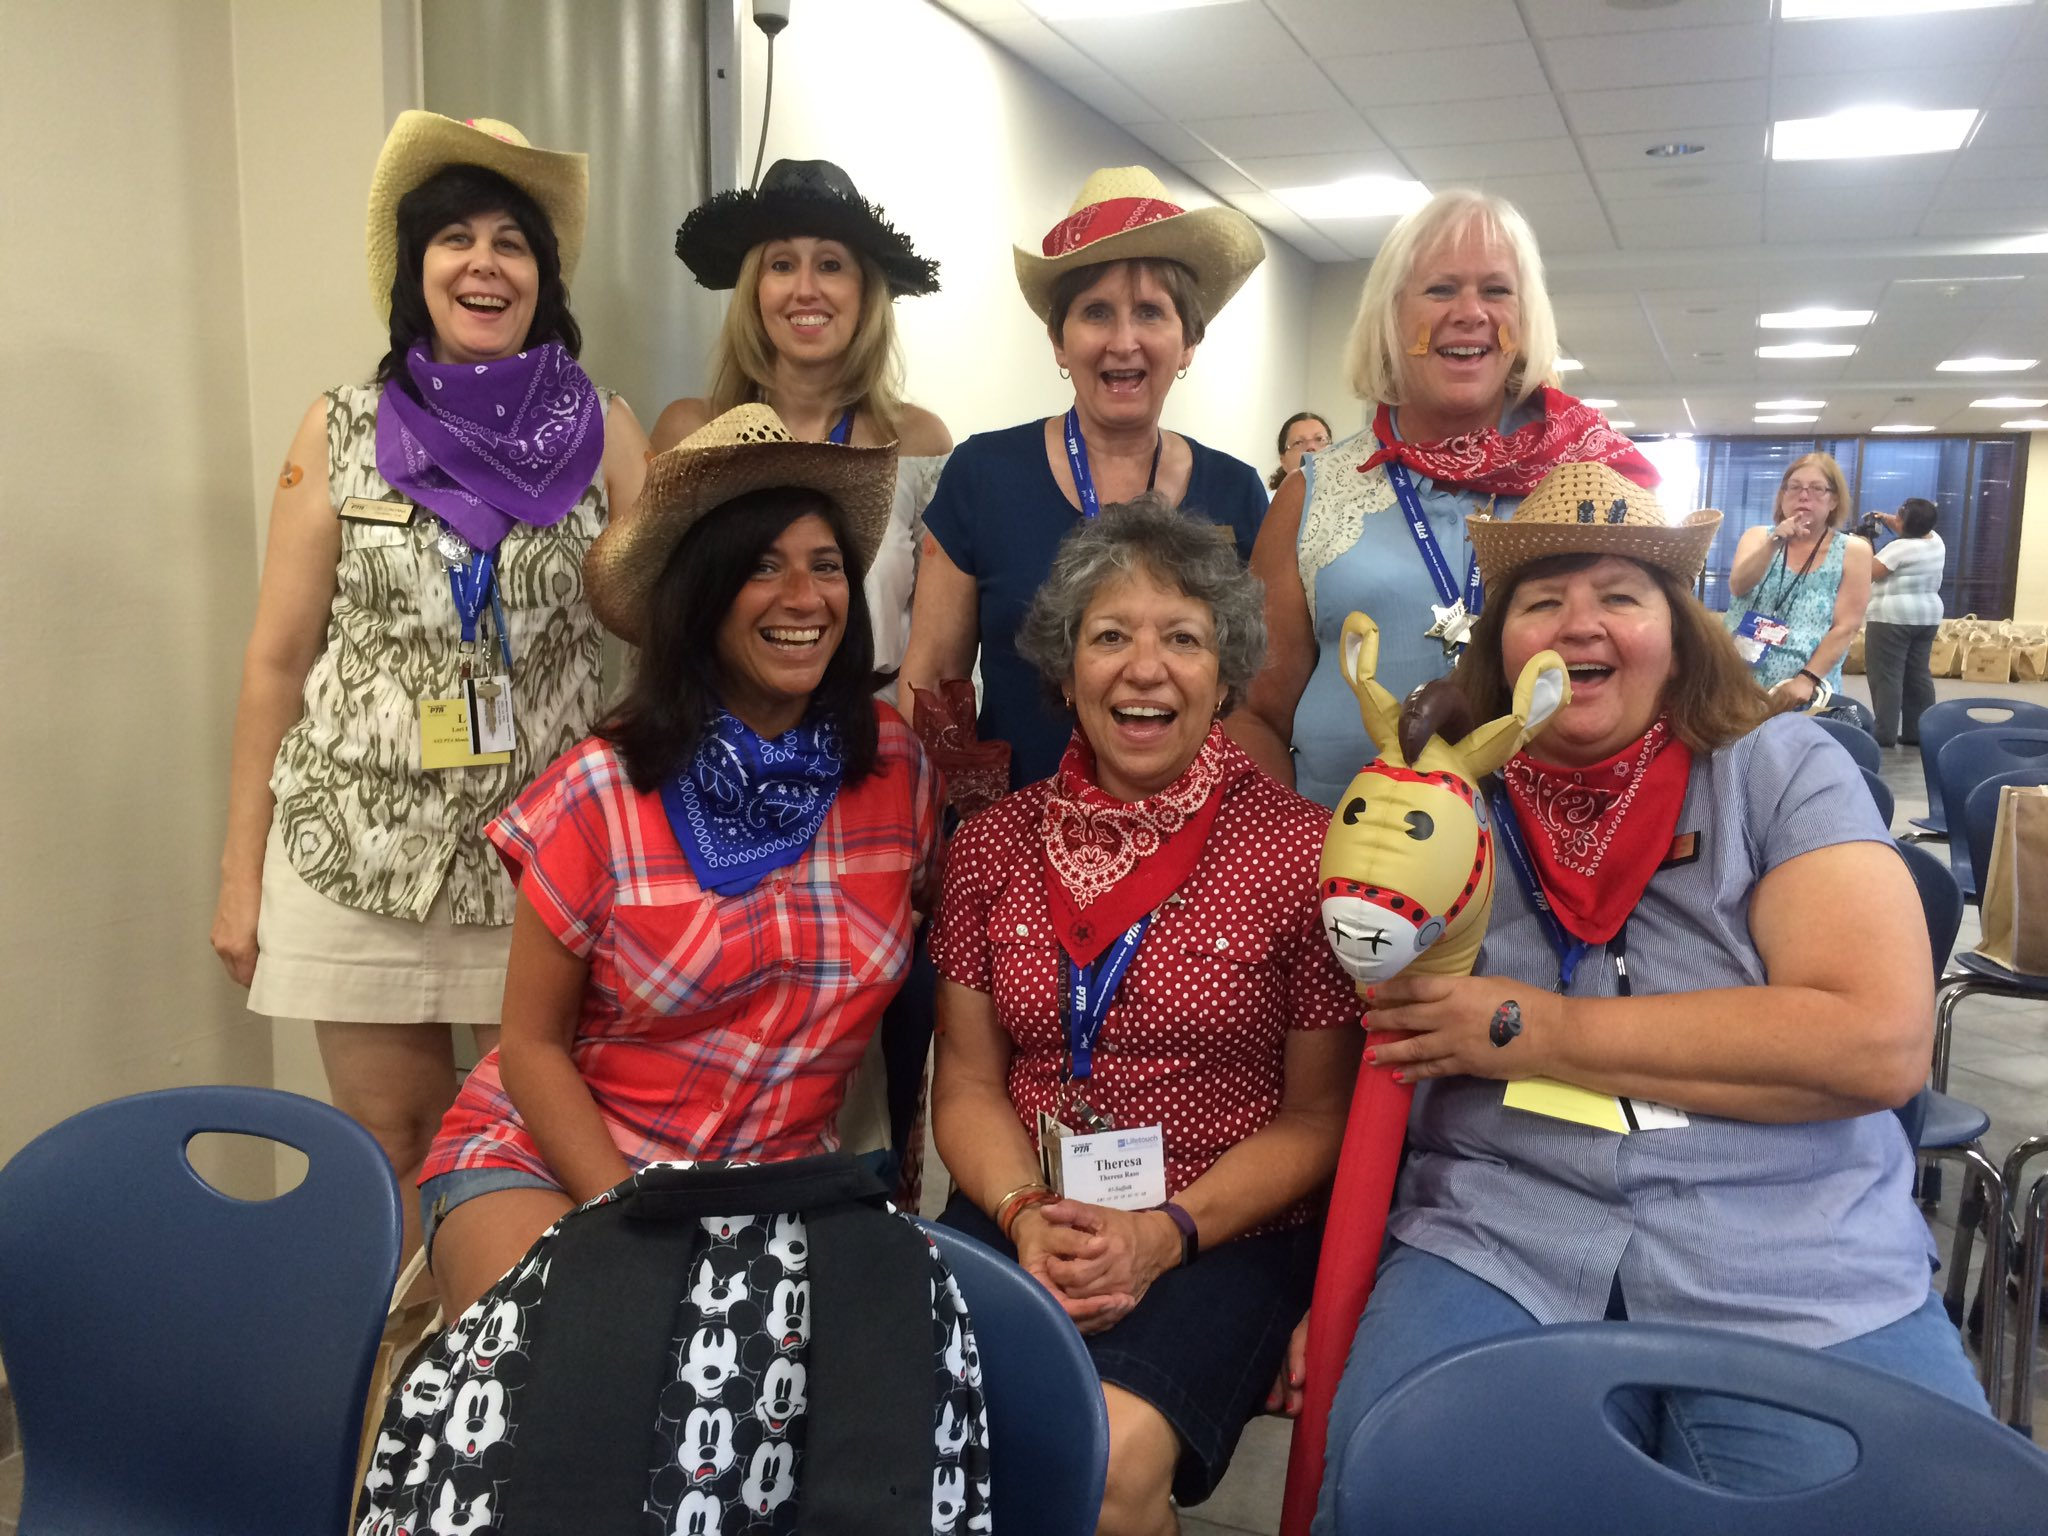 Giddy up with the Suffolk Sidewinders!! Yee haw!!!! @NYSPTA @SuffolkPTA #NYSPTASLC16 #TeamSuffolkCowgirls https://t.co/agNJZ2Hj5M